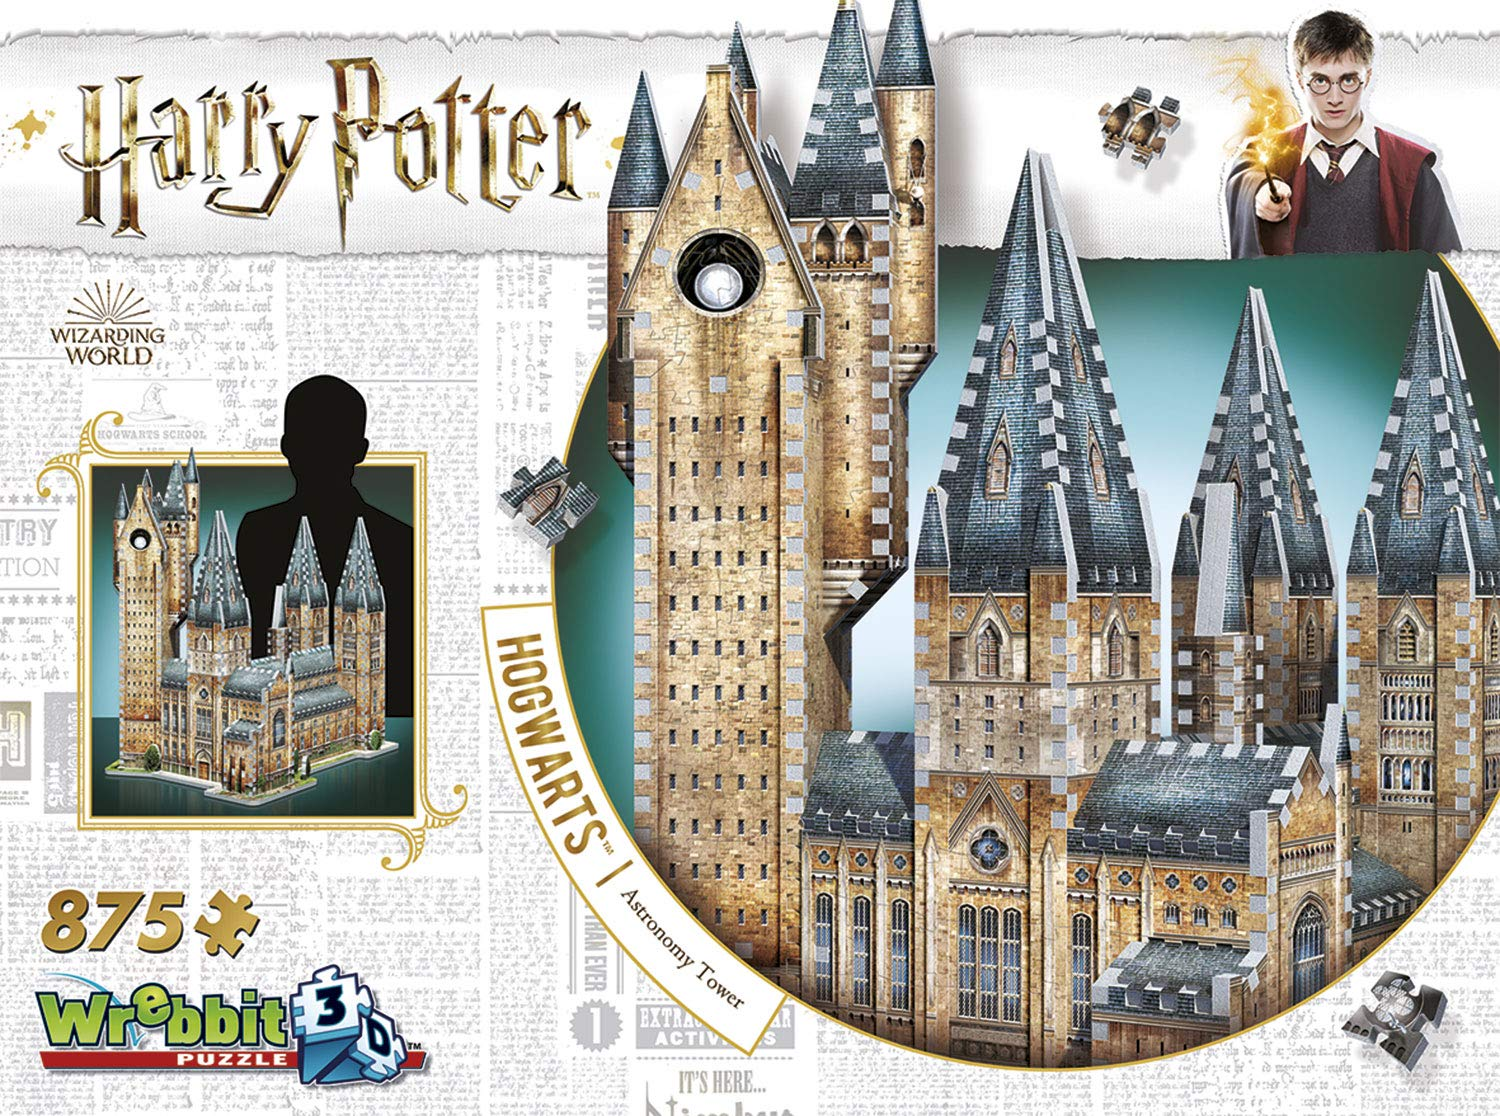 Harry Potter Astronomy Tower 3D Jigsaw Puzzle Made by Wrebbit Puzz-3D product image